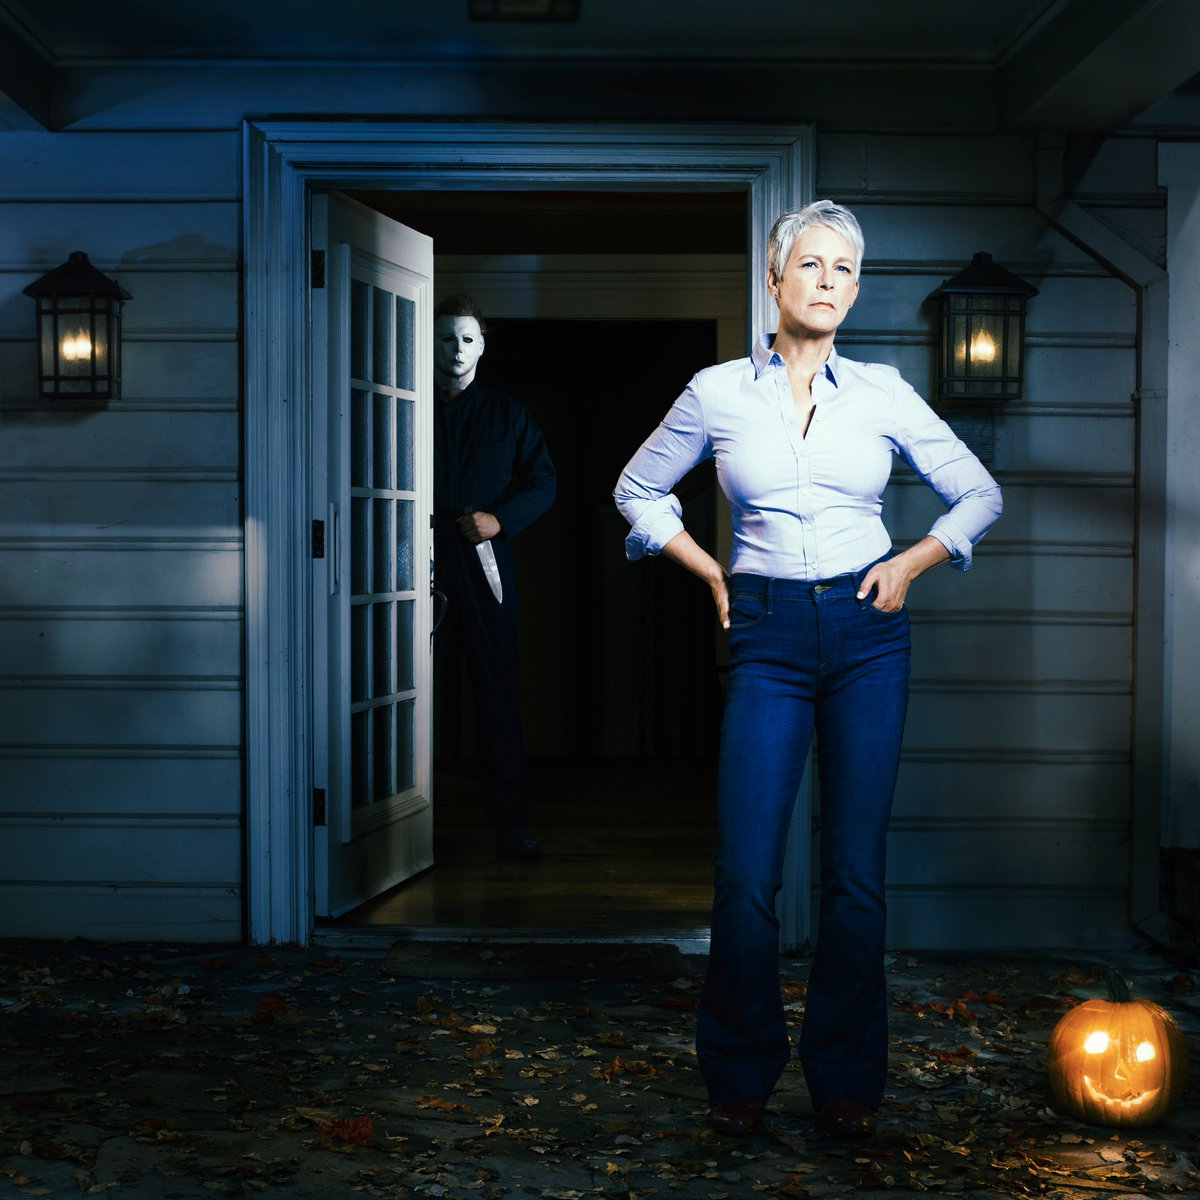 Jamie Lee Curtis returns to her iconic role as Laurie Strode in HALLOWEEN, released by Universal Pictures on Oct. 19, 2018. #HalloweenMovie https://t.co/oC8jQUvdrh